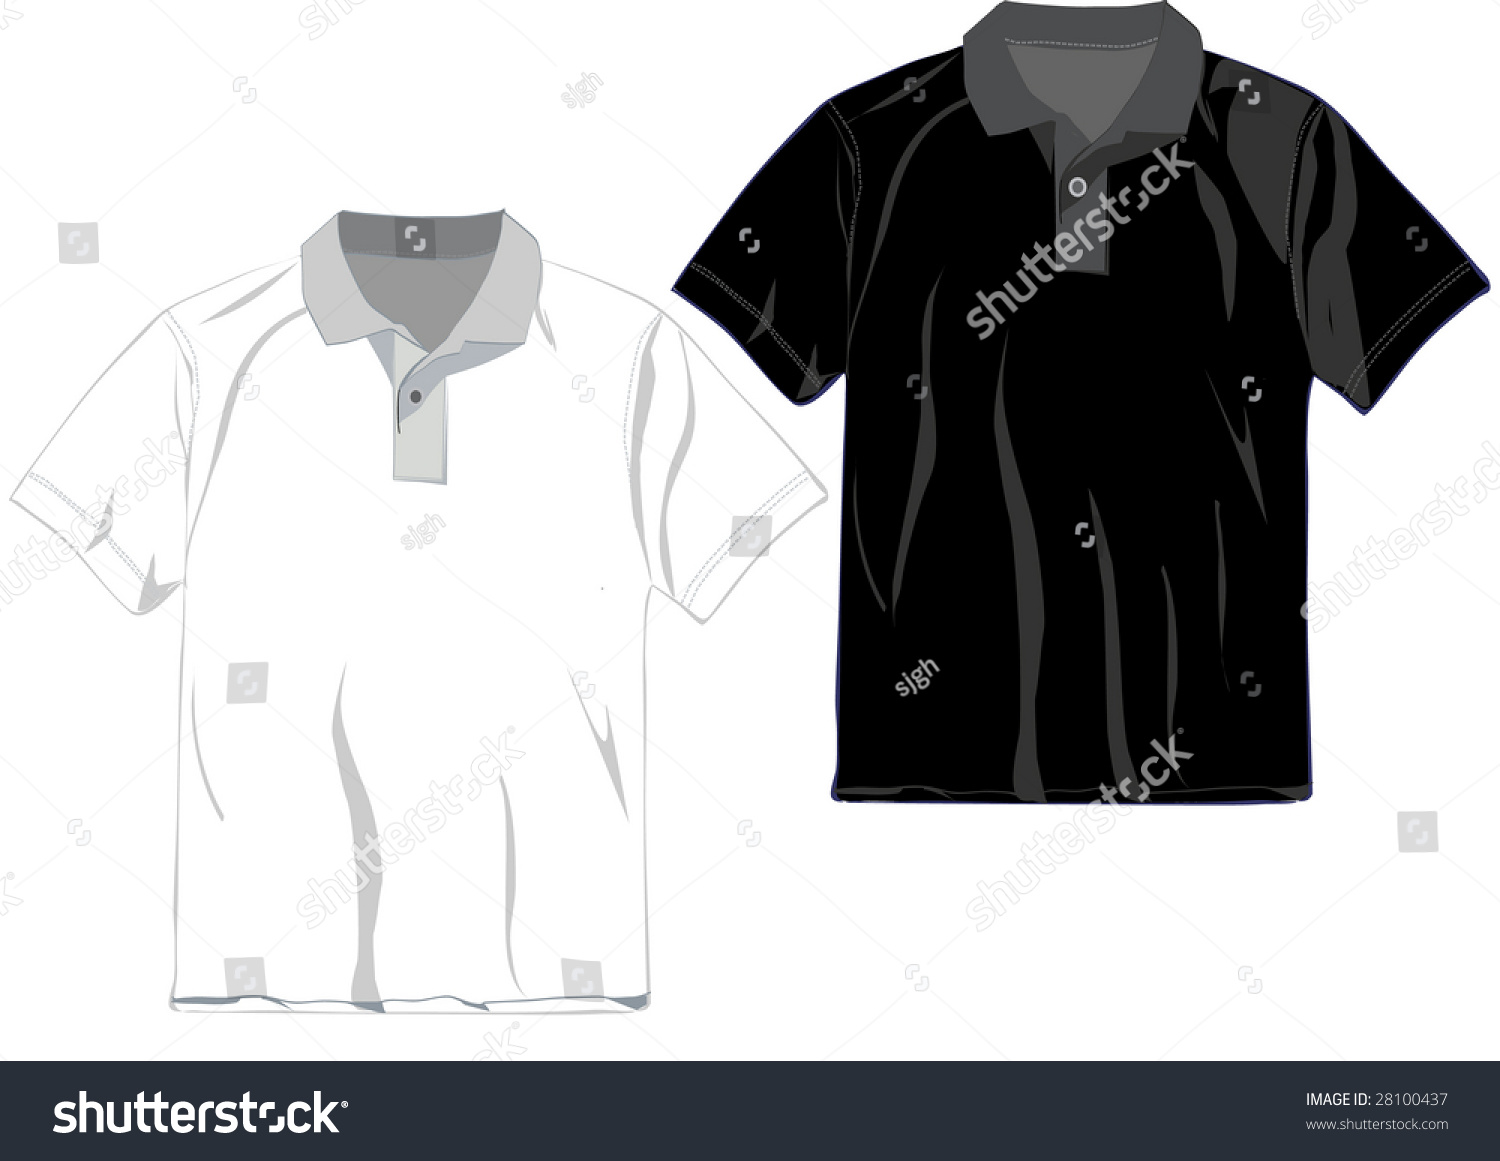 White and black polo t shirt design template stock photo for Shutterstock t shirt design